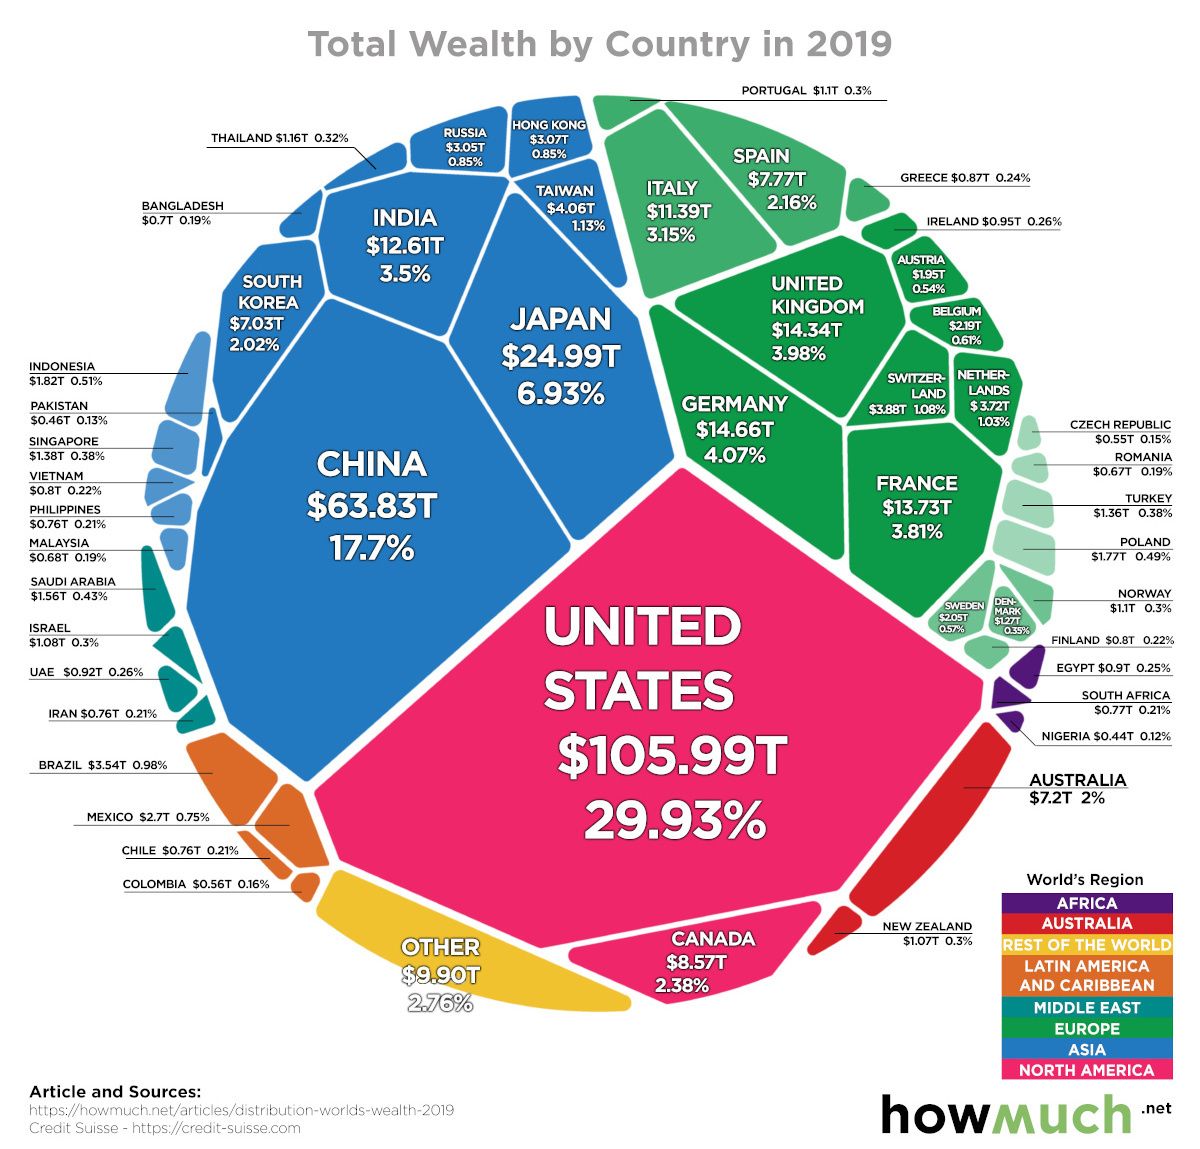 Total wealth by country in 2019, visualized